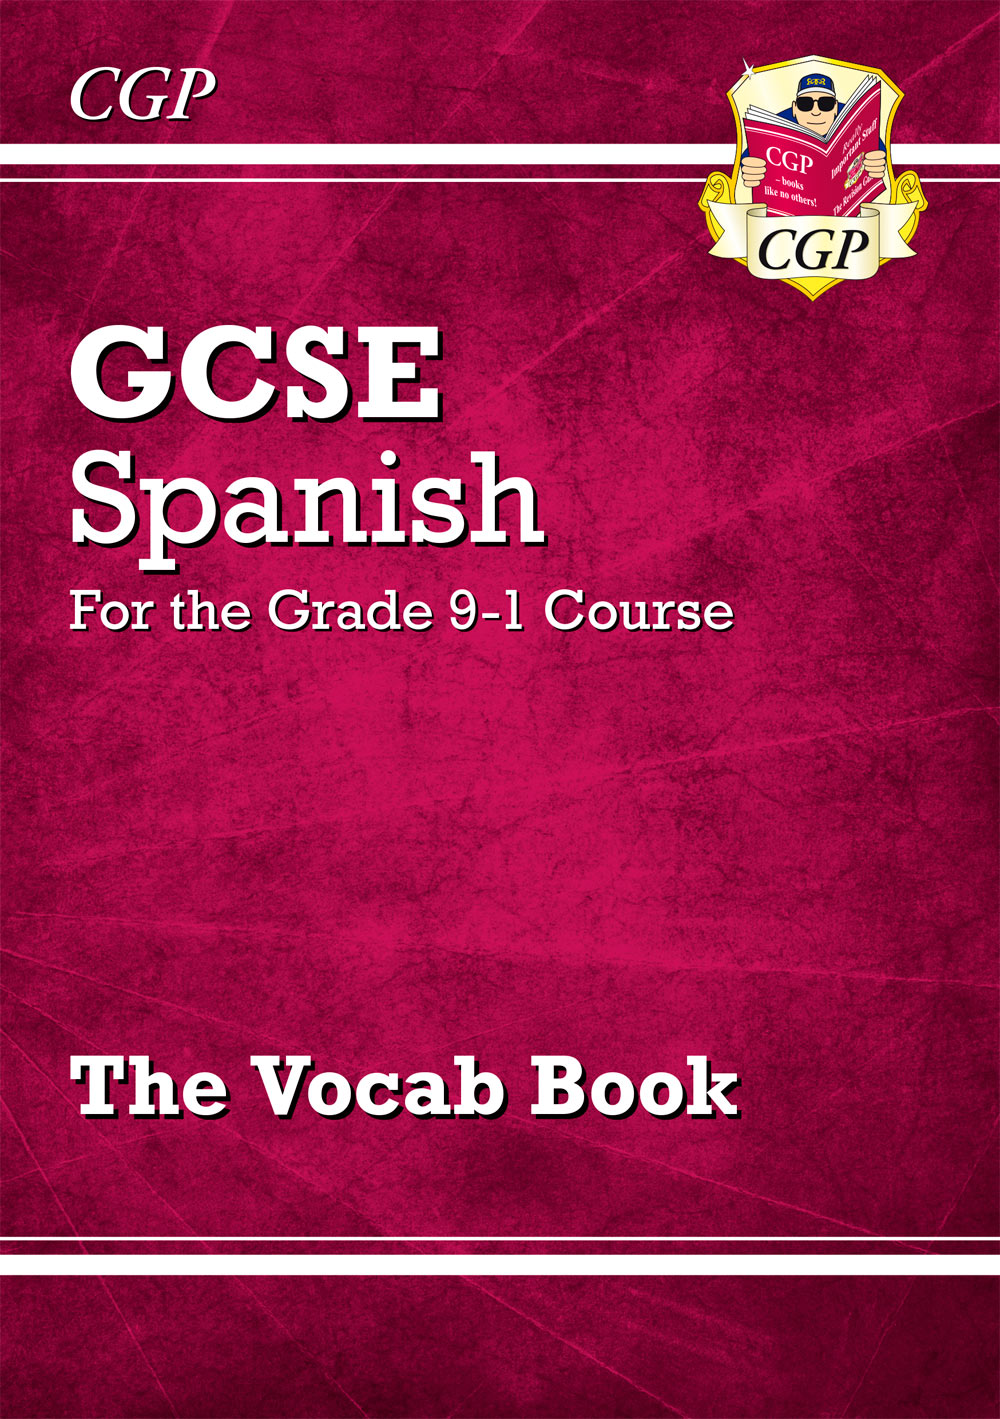 SPHV41 - GCSE Spanish Vocab Book - for the Grade 9-1 Course